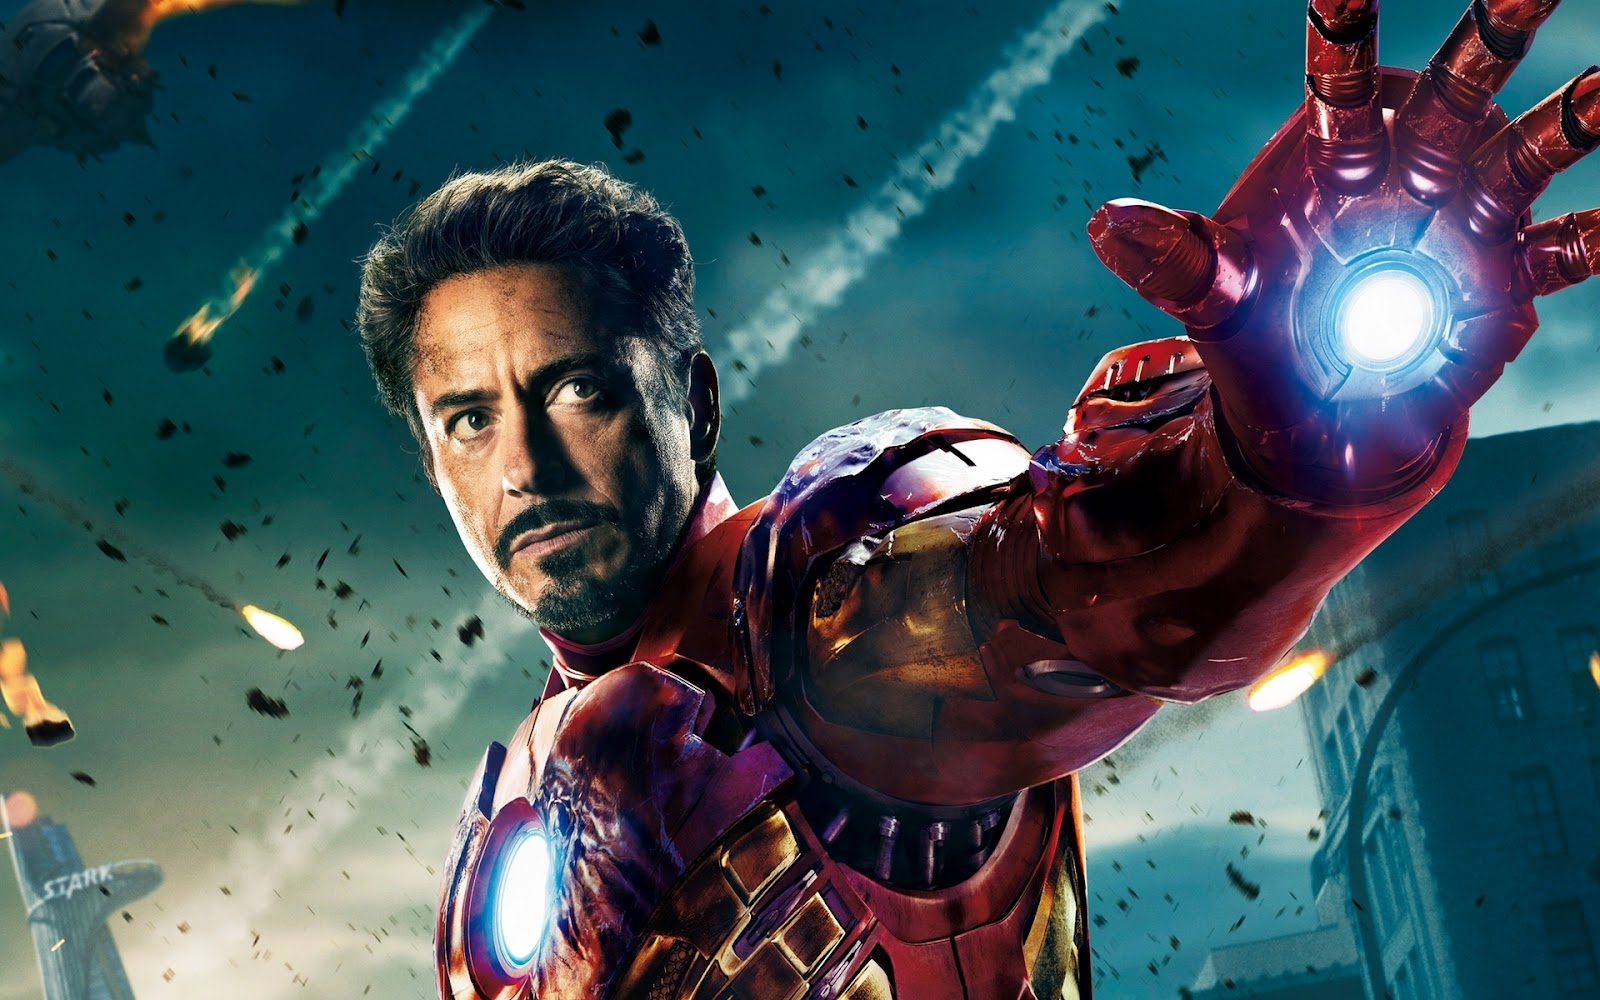 Wallpapers hd iron man the avengers 2012